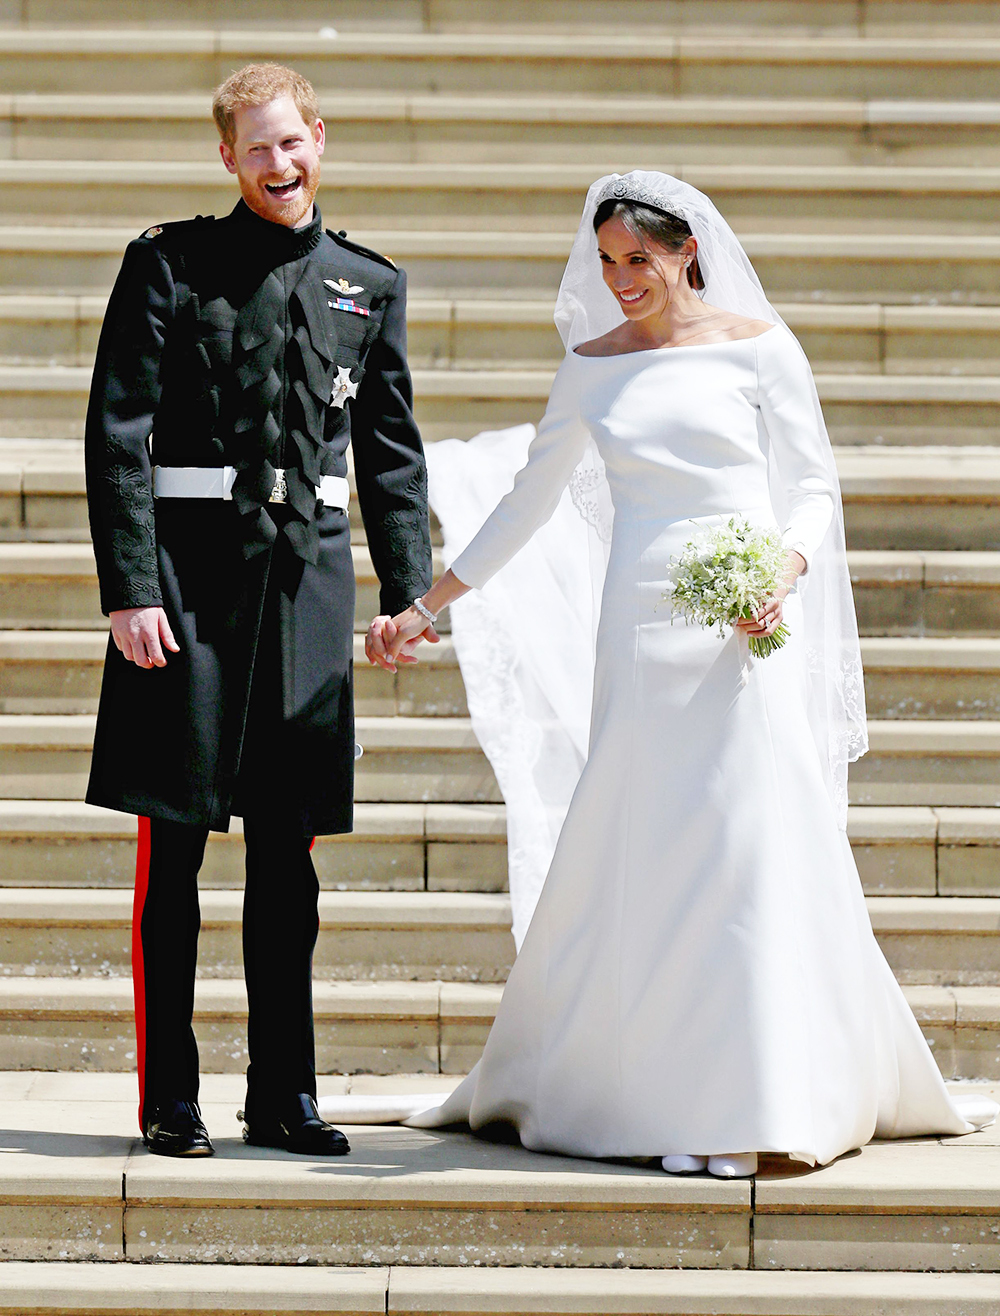 Mandatory Credit: Photo by REX/Shutterstock (9685436fh) Prince Harry and Meghan Markle The wedding of Prince Harry and Meghan Markle, Ceremony, St George's Chapel, Windsor Castle, Berkshire, UK - 19 May 2018